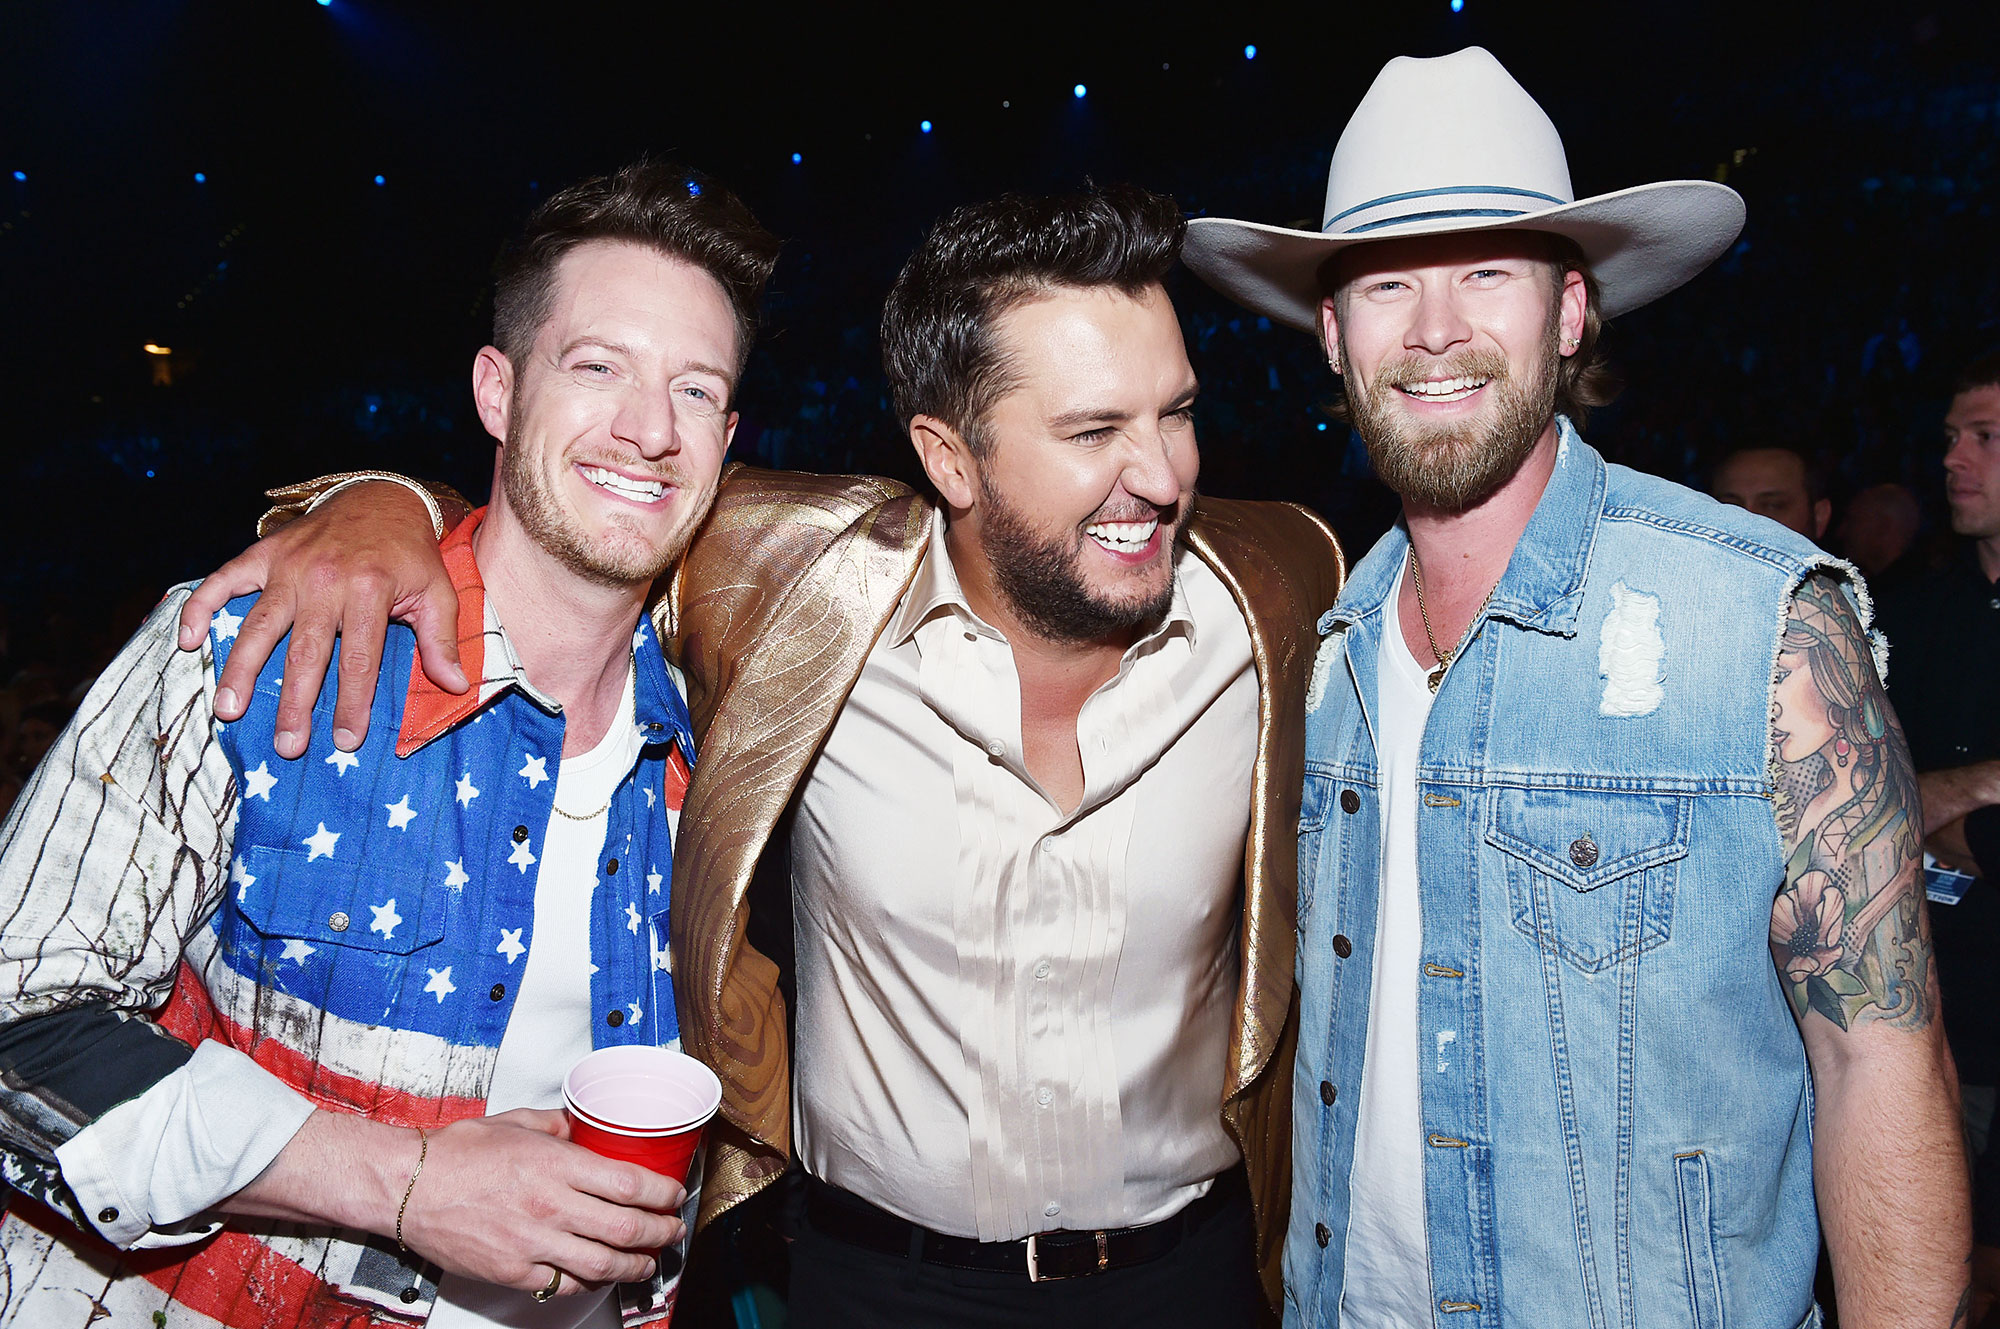 Inside ACM Awards 2019 Tyler Hubbard Brian Kelley Luke Bryan - Florida Georgia Line's Tyler Hubbard and Brian Kelley had a blast with Bryan.